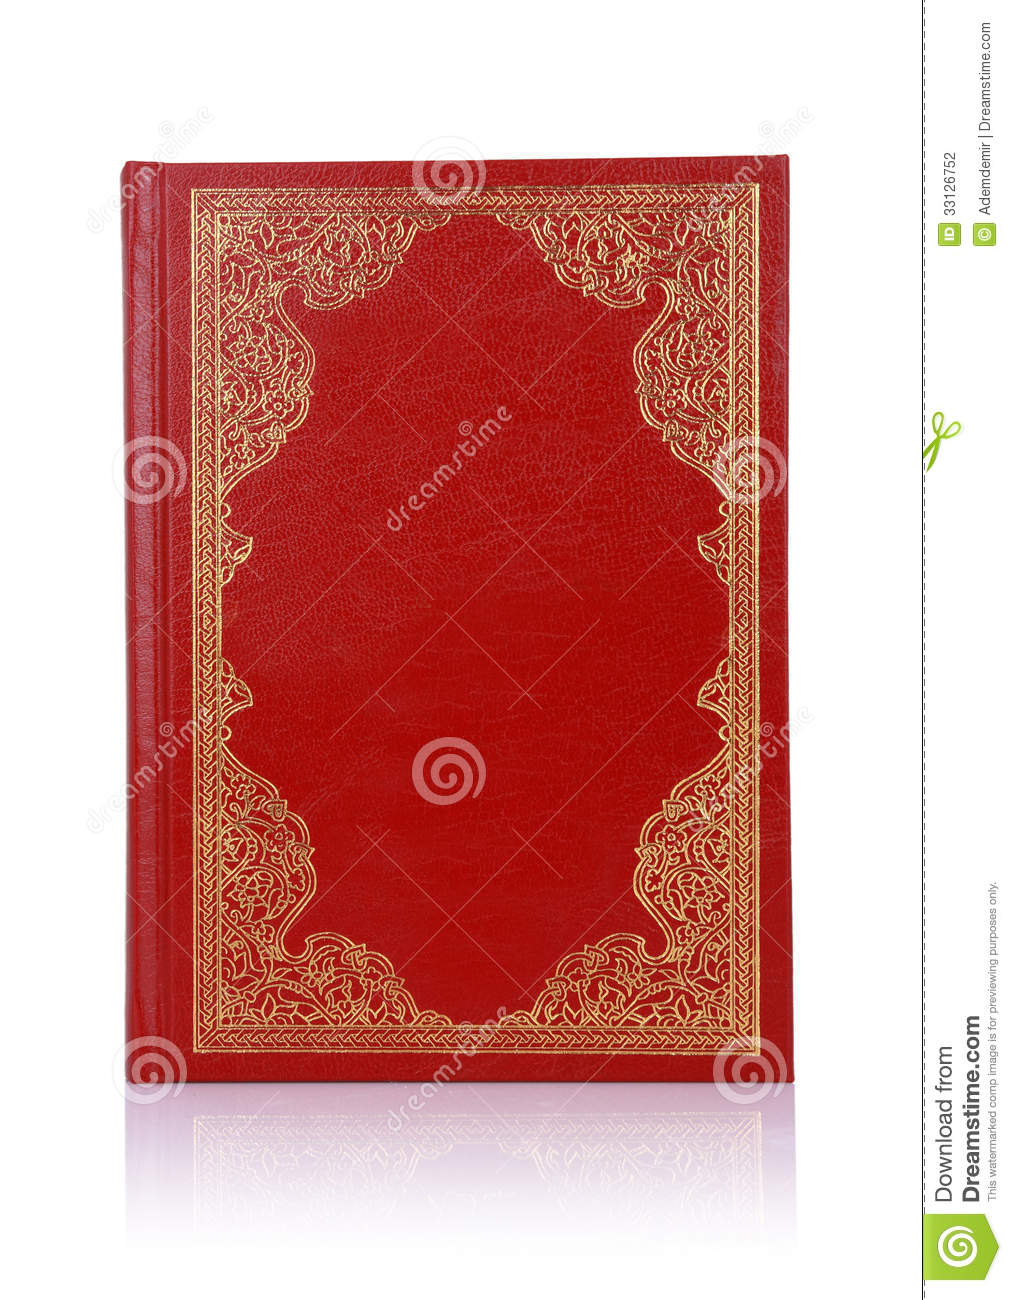 Old Red Book With Gold Color Ornament On Cover Stock